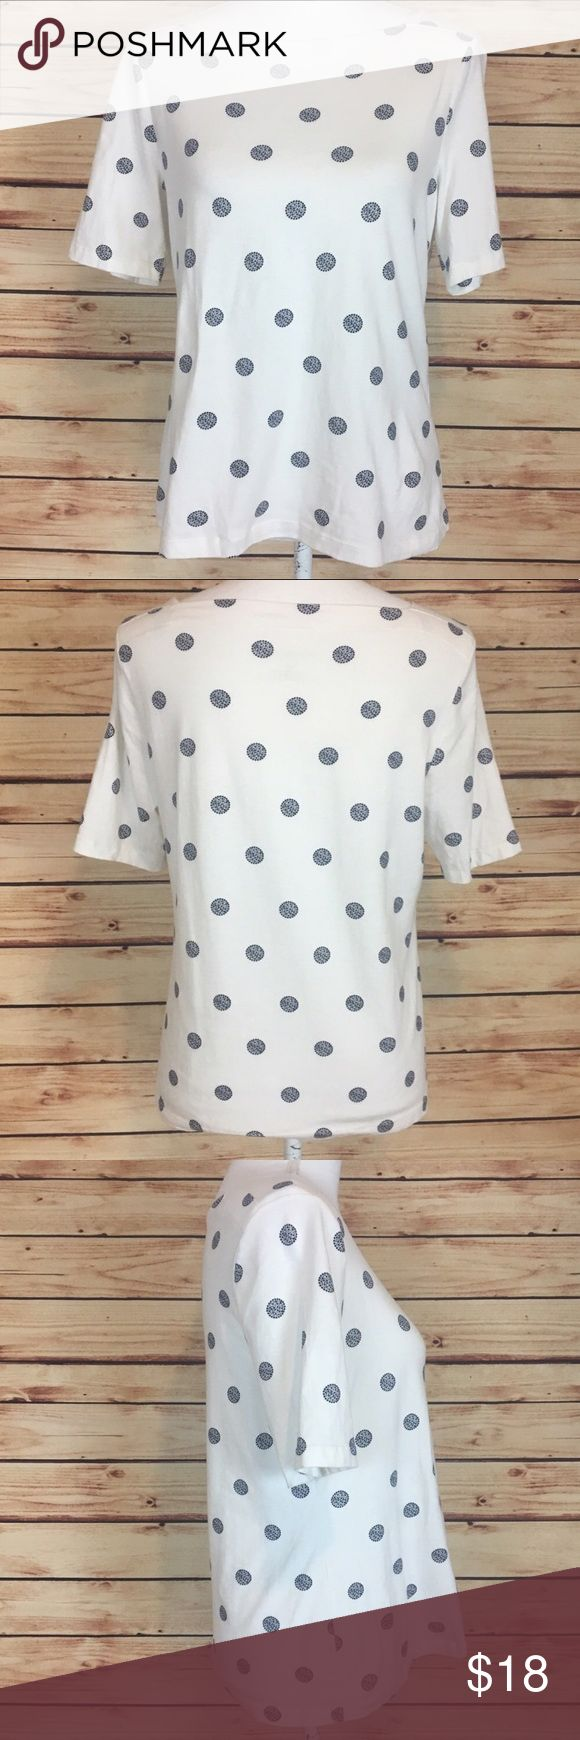 "Talbots White Blue Polka Dots Short Sleeve Shirt Talbots short sleeve shirt. White with blue polka dots. Boat neck. Size small petite.  Excellent preowned condition with no flaws.  Measurements are approximately: 37"" bust and 23"" length.  95% cotton, 5% spandex.  No trades. All items come from a pet friendly, smoke free home. Bundle to save! Talbots Tops Tees - Short Sleeve"